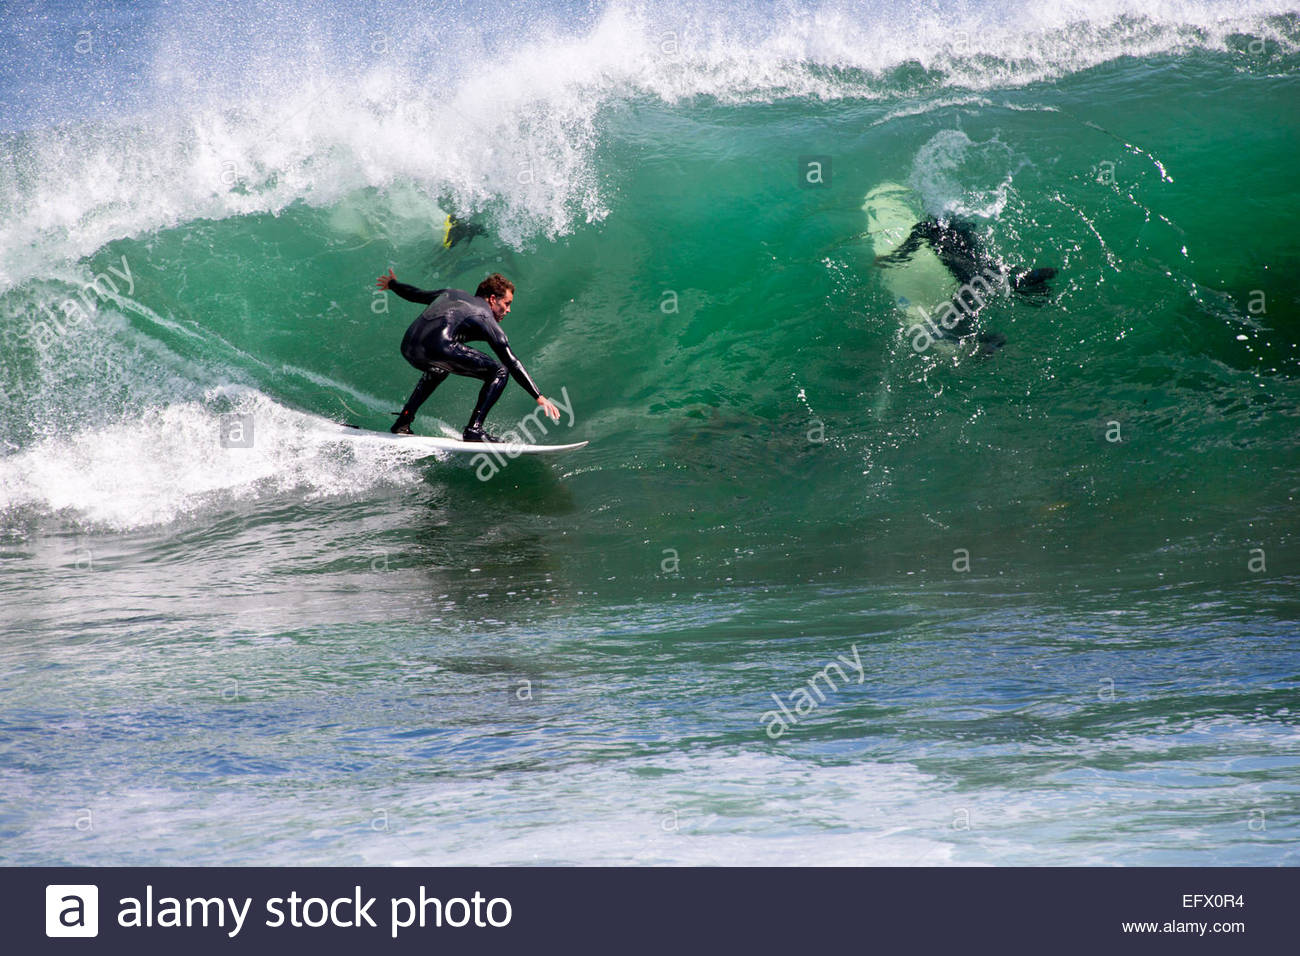 Surfer riding grosse vague Photo Stock